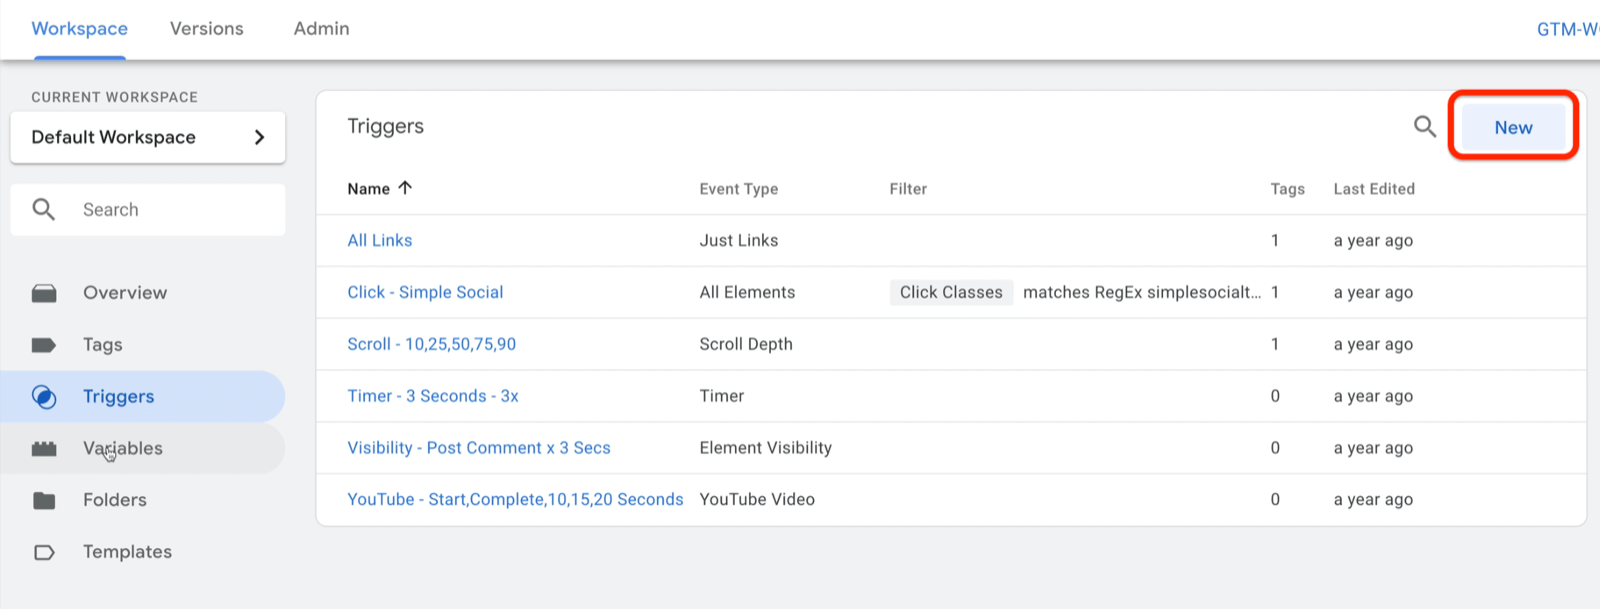 example google tag manager dashboard workspace with triggers selected and several example triggers shown with new button highlighted on the top right